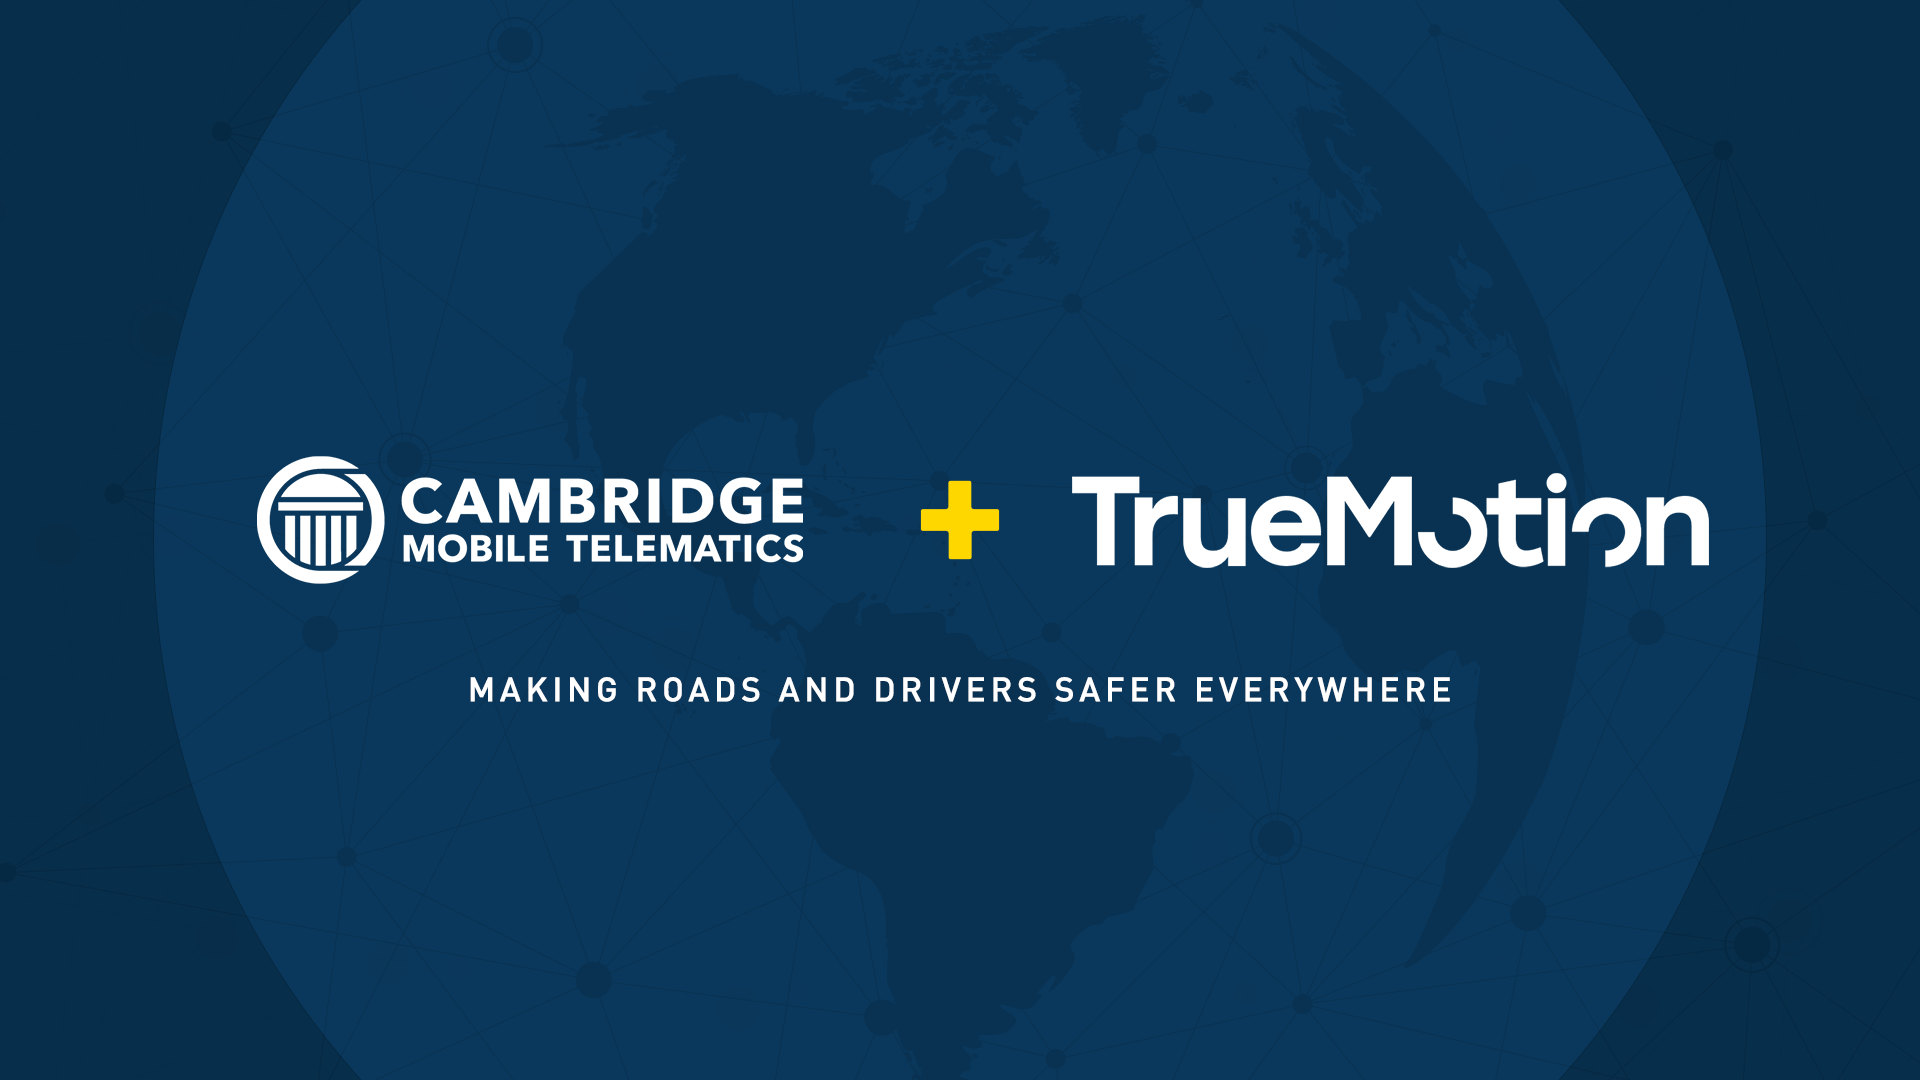 Leaders in telematics join forces